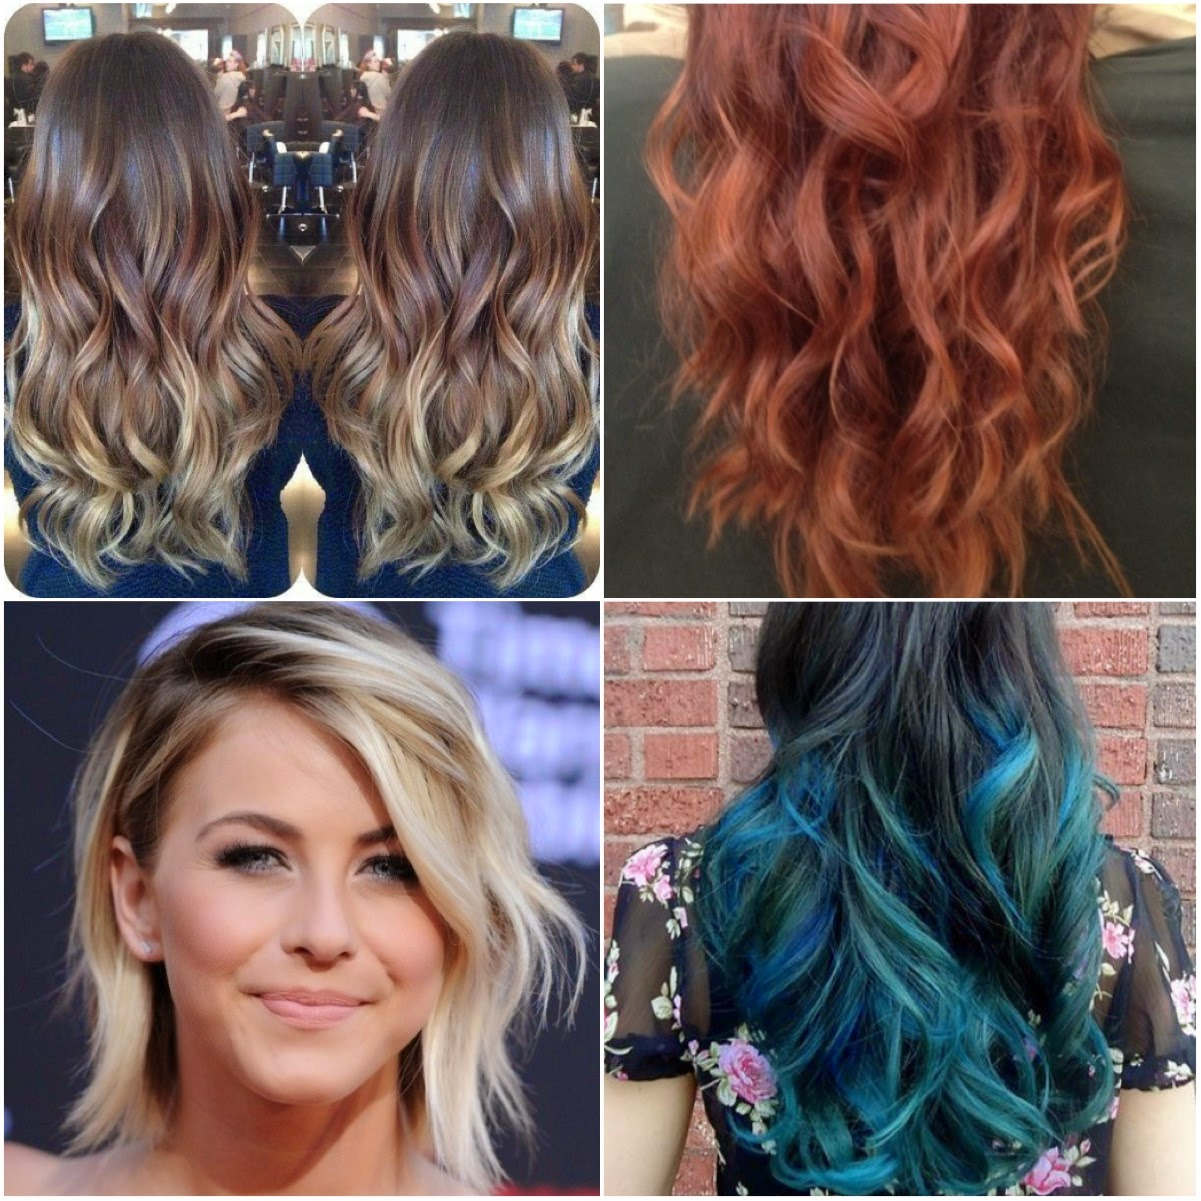 Hair Colors Spring 2015 Of Spring 2015 Hair Color Trends ...